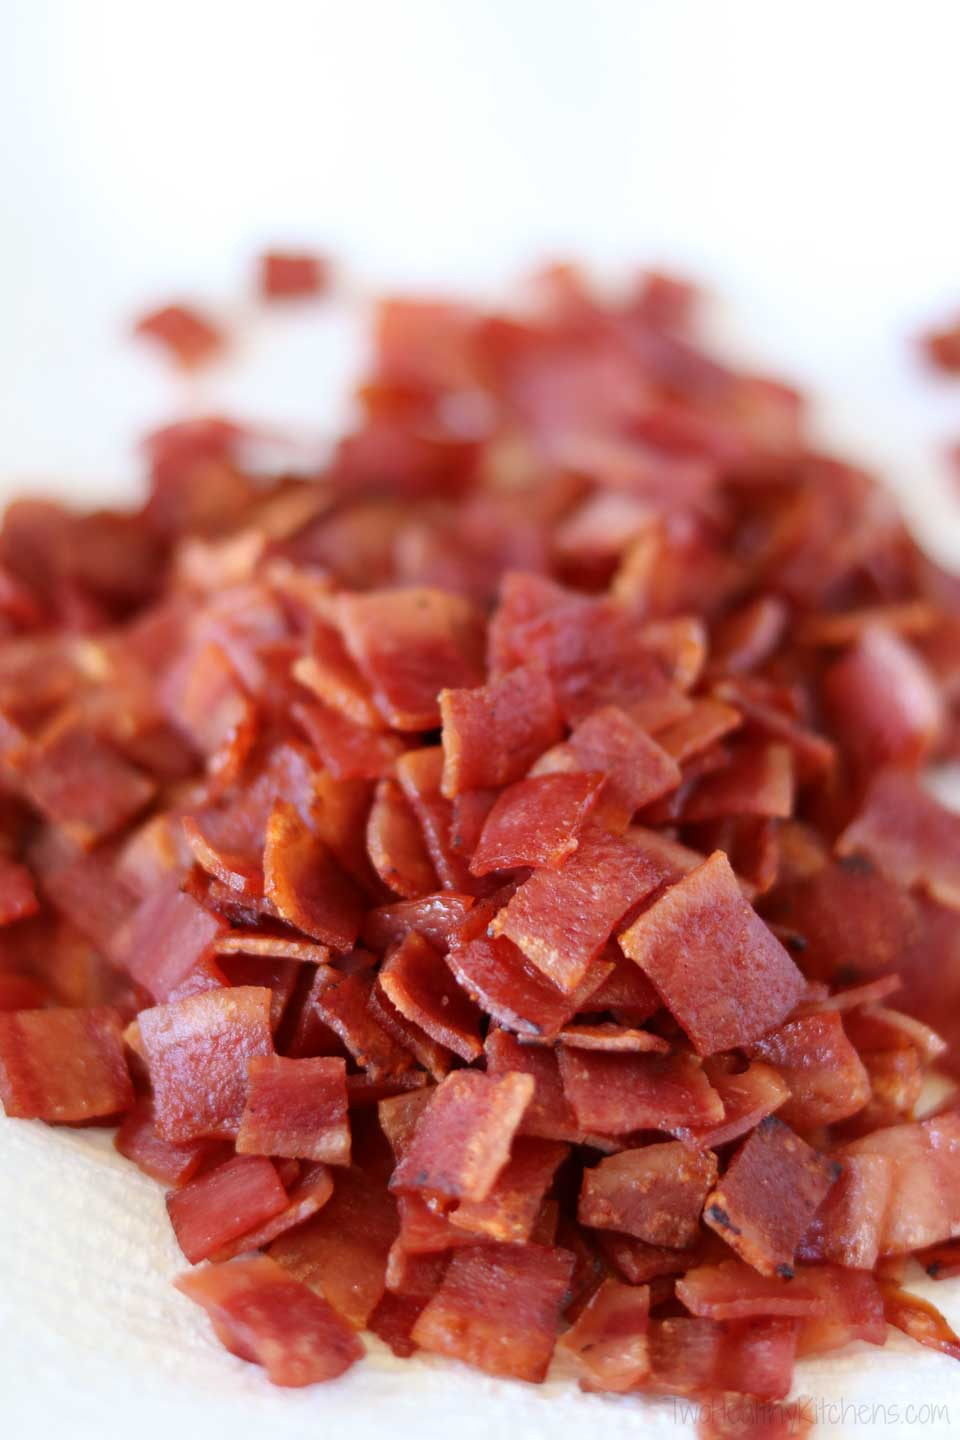 If you don't care for turkey bacon, center-cut bacon is still a relatively lean, lighter option compared with regular, full-fat bacon or with prosciutto.